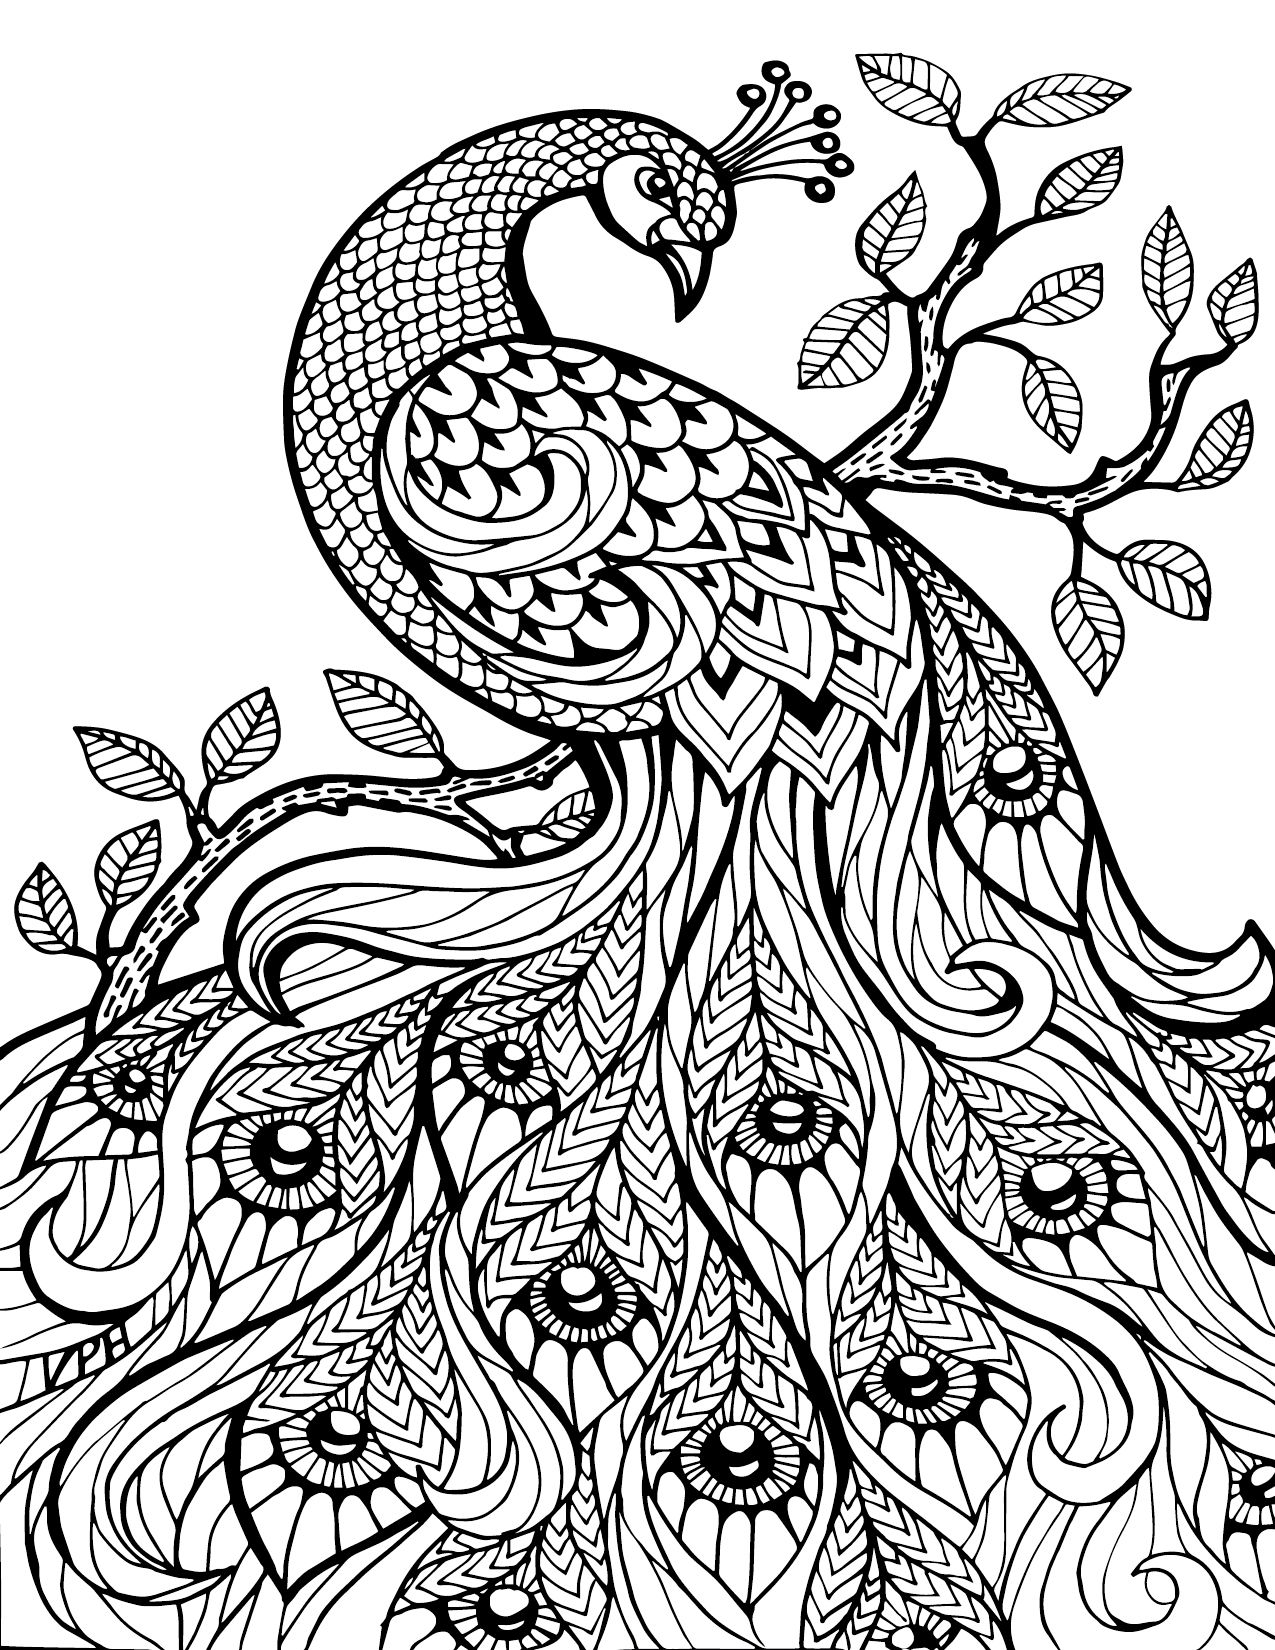 Free coloring in pages - Free Printable Coloring Pages For Adults Only Image 36 Art Davlin Publishing